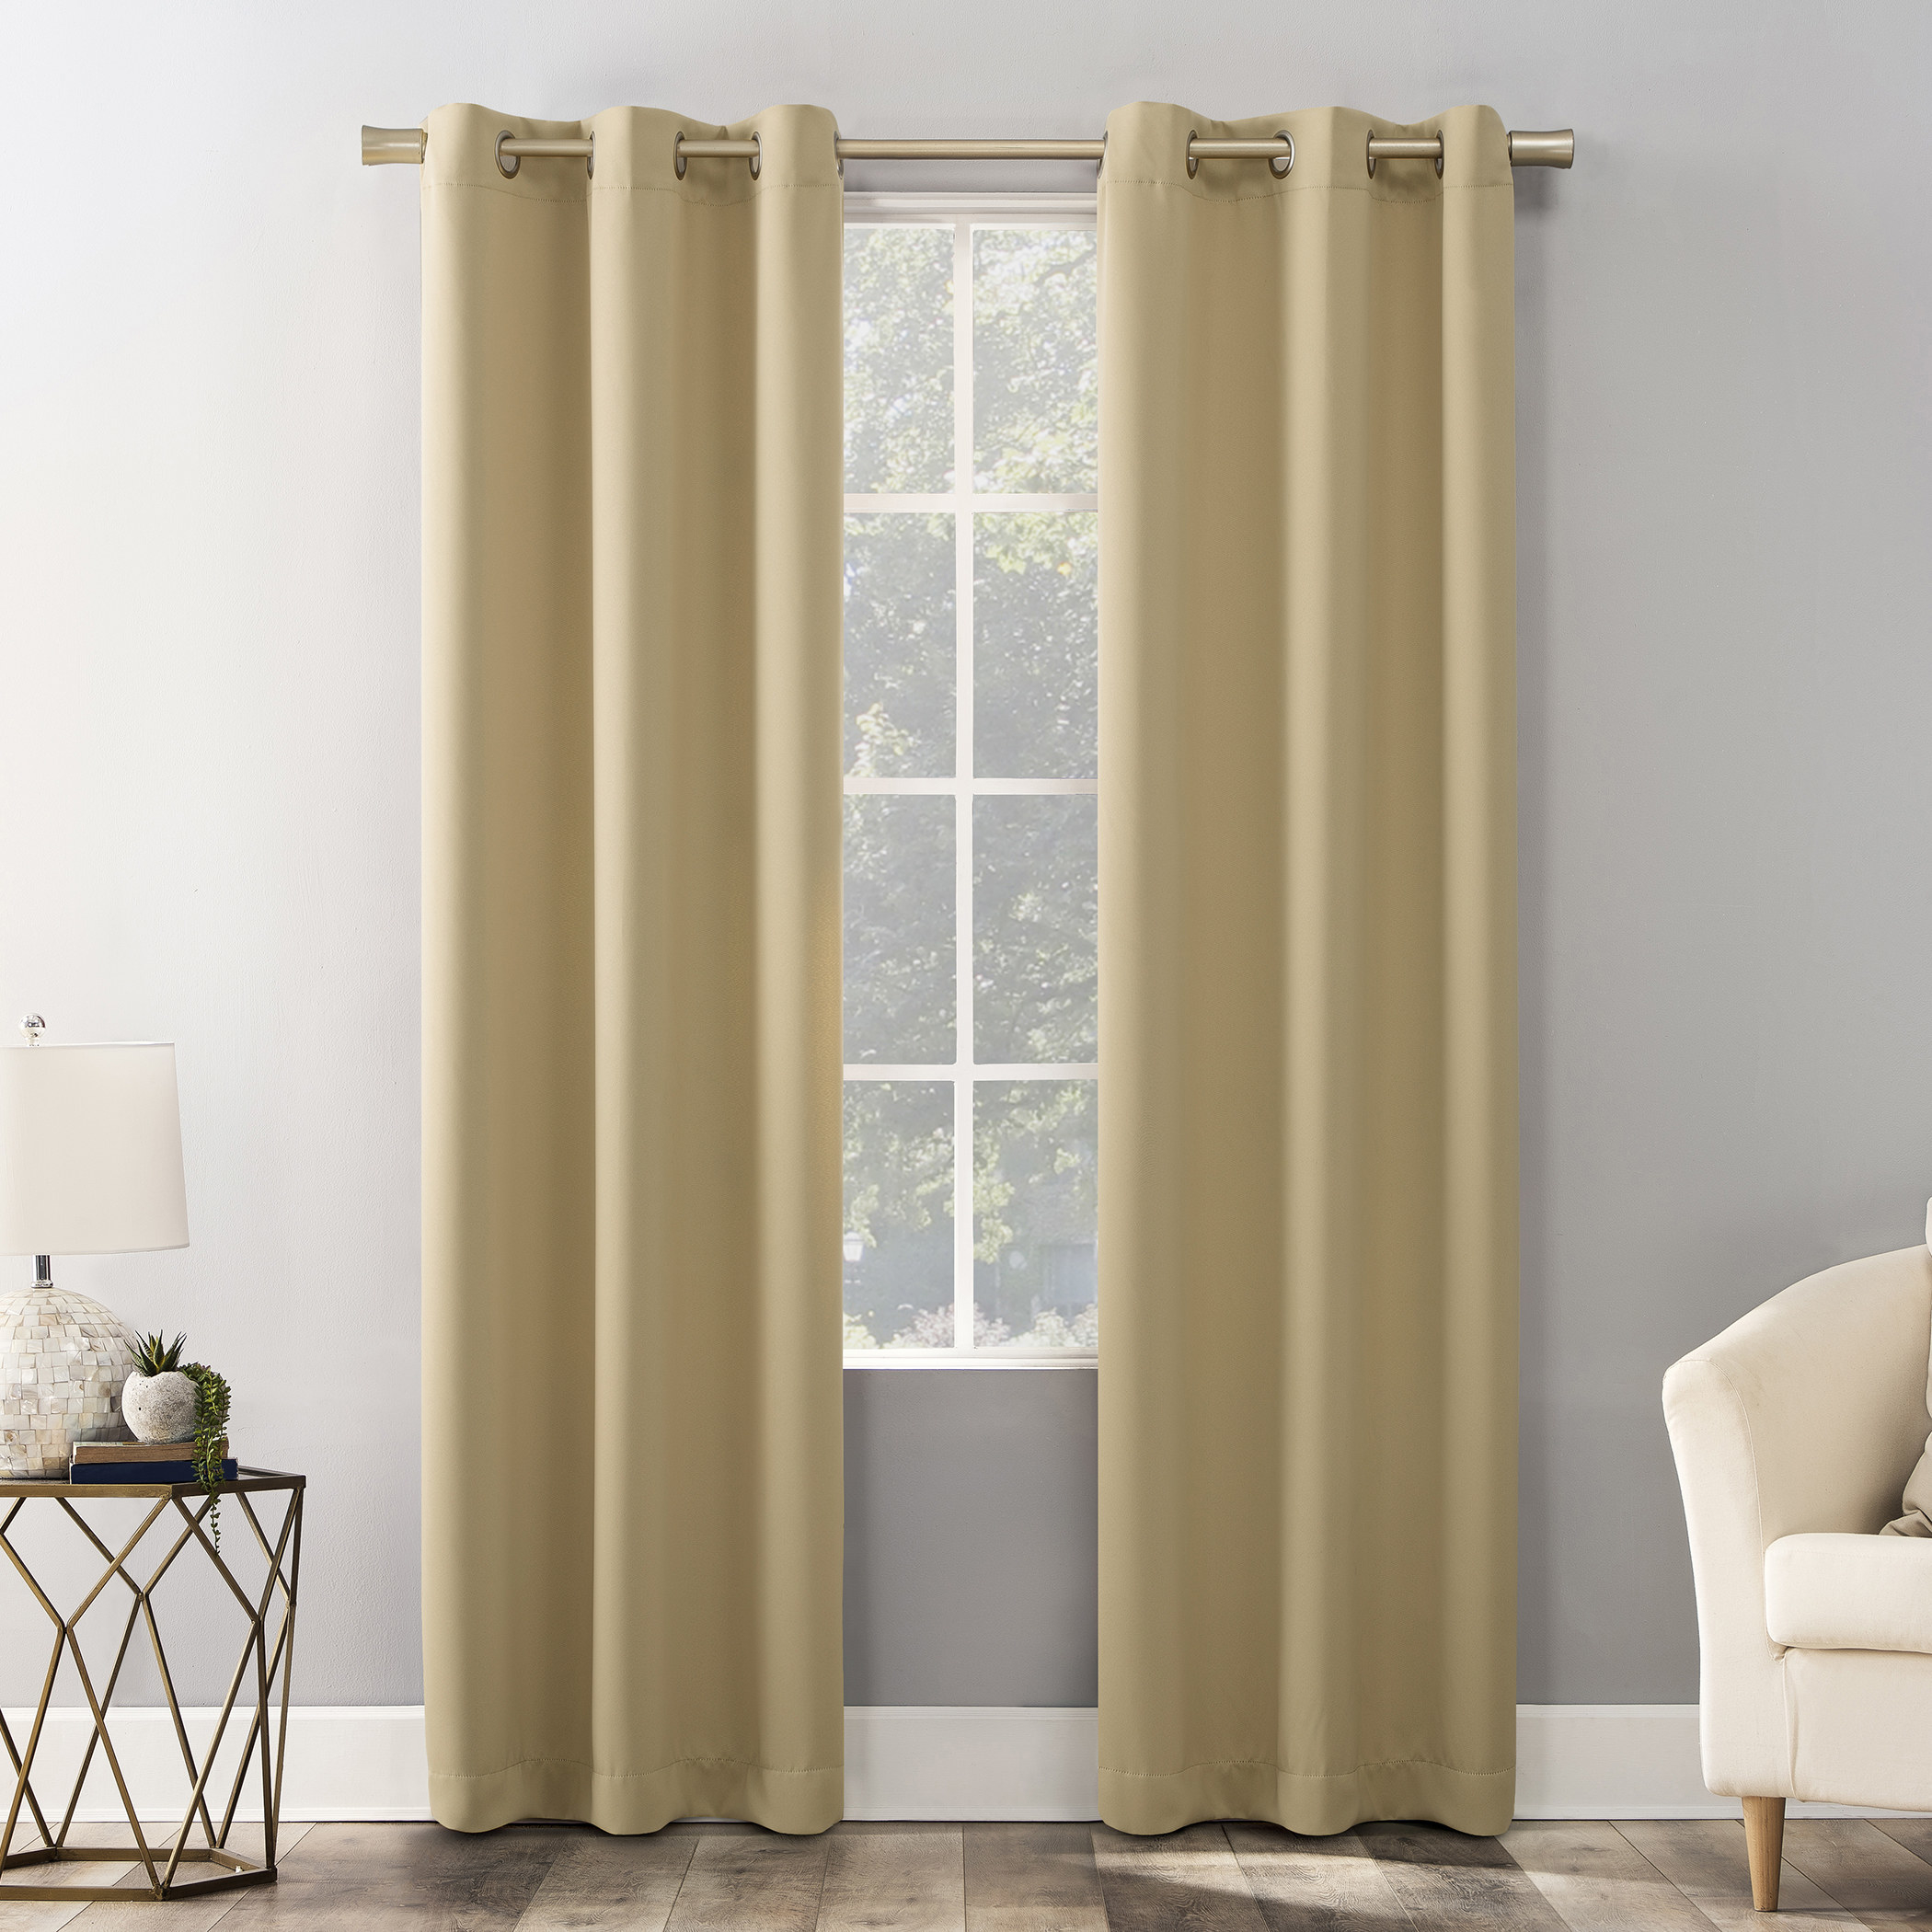 The curtains in the color yellow